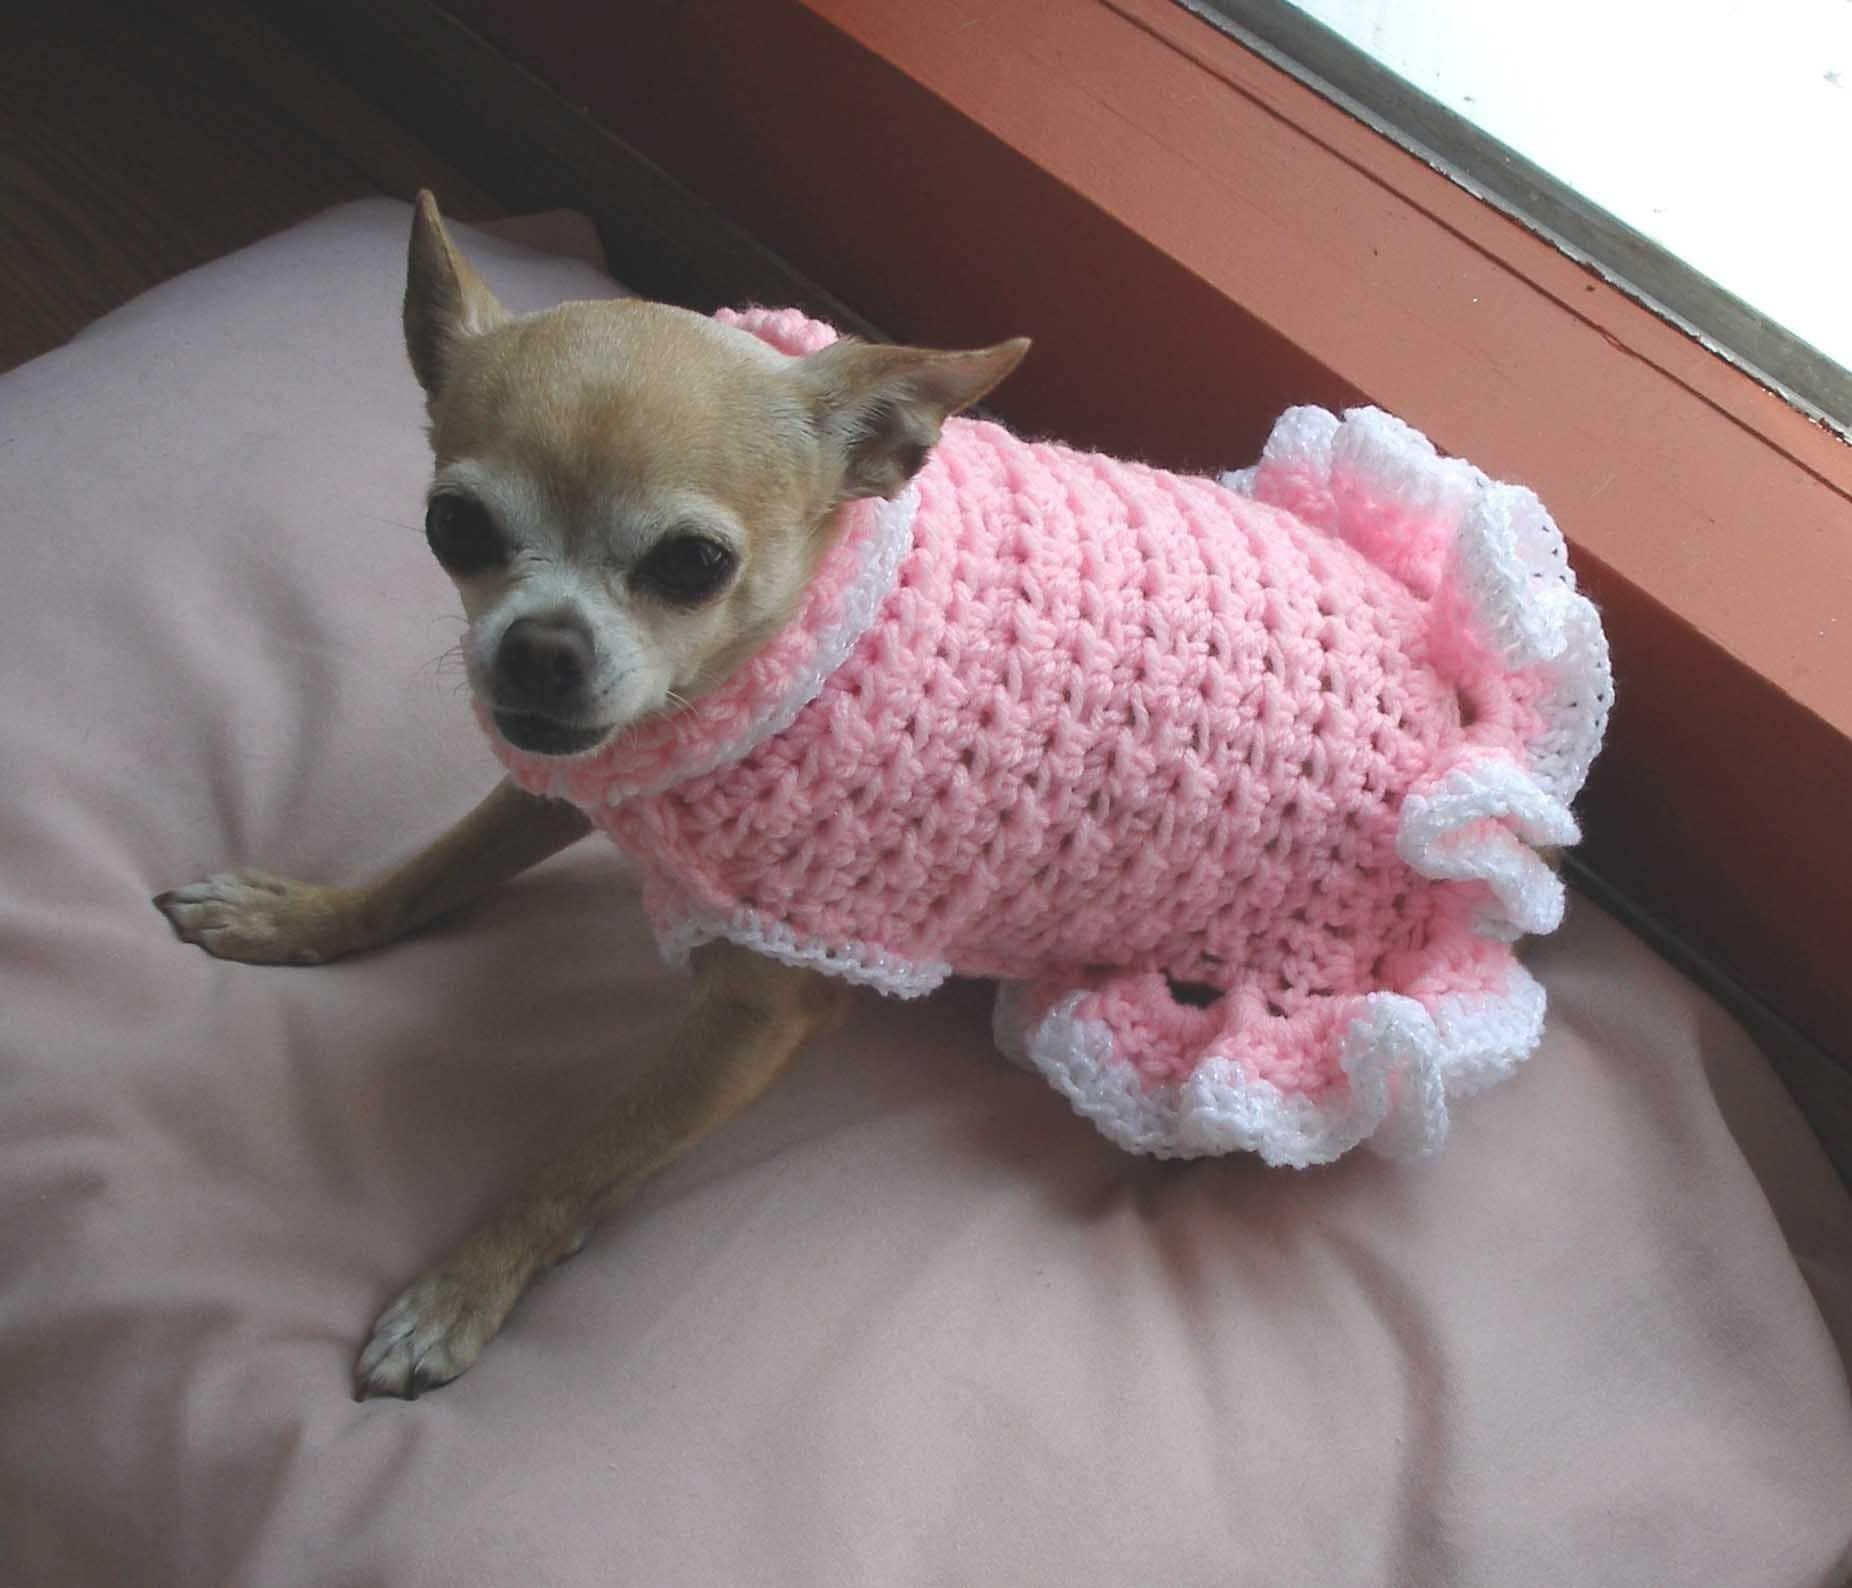 Crochet Xl Dog Sweater : PDF Crochet Pattern Cha-Cha Dog Sweater Dress by ozarknomad